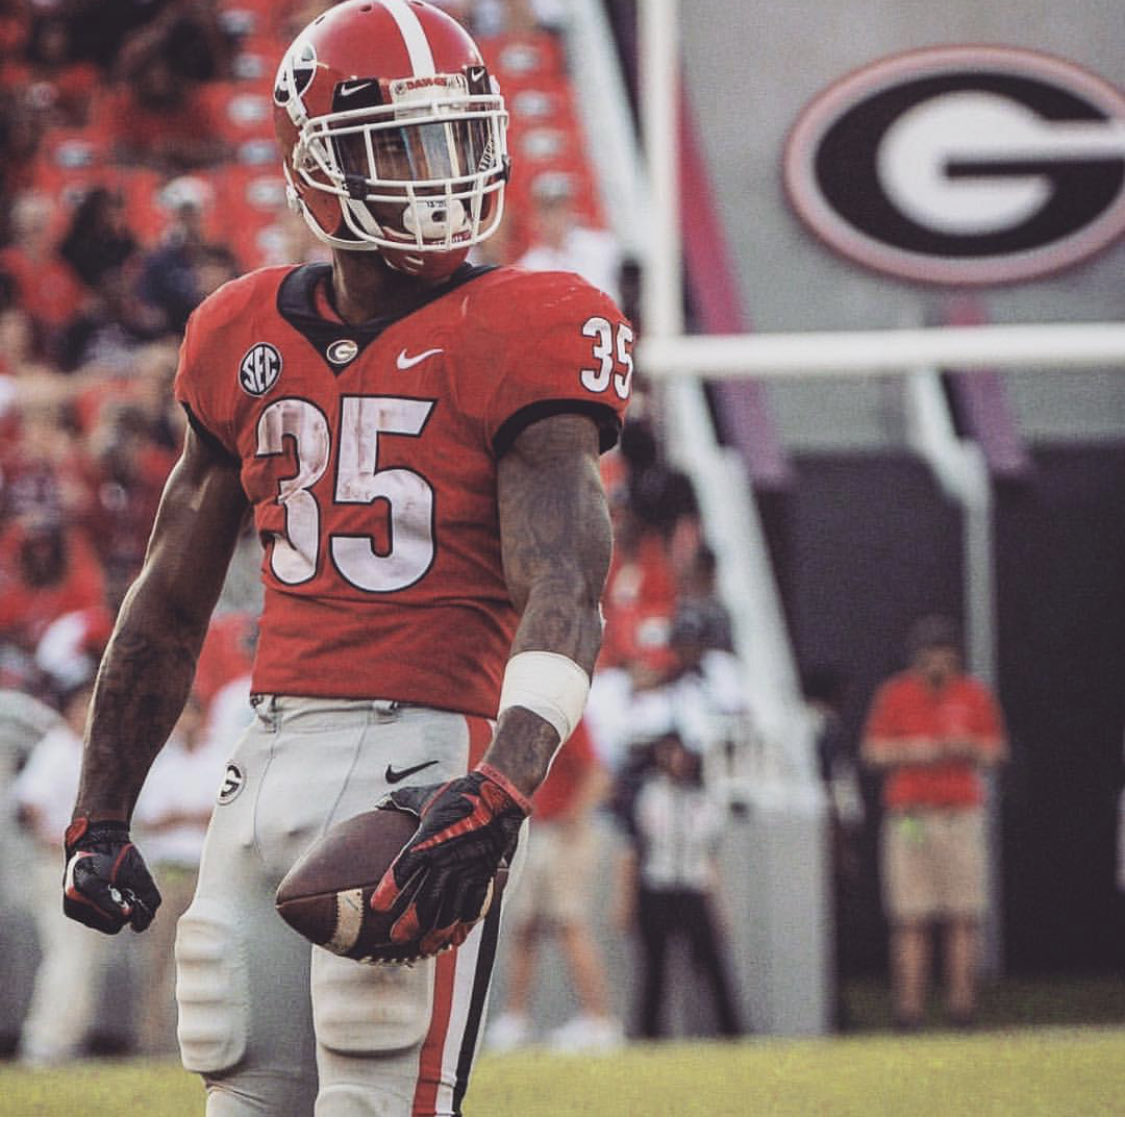 Couldn't be happier for @brianherrienn #DGD The @Browns got a GREAT teammate & even better person! Best of luck on the next level #RBU